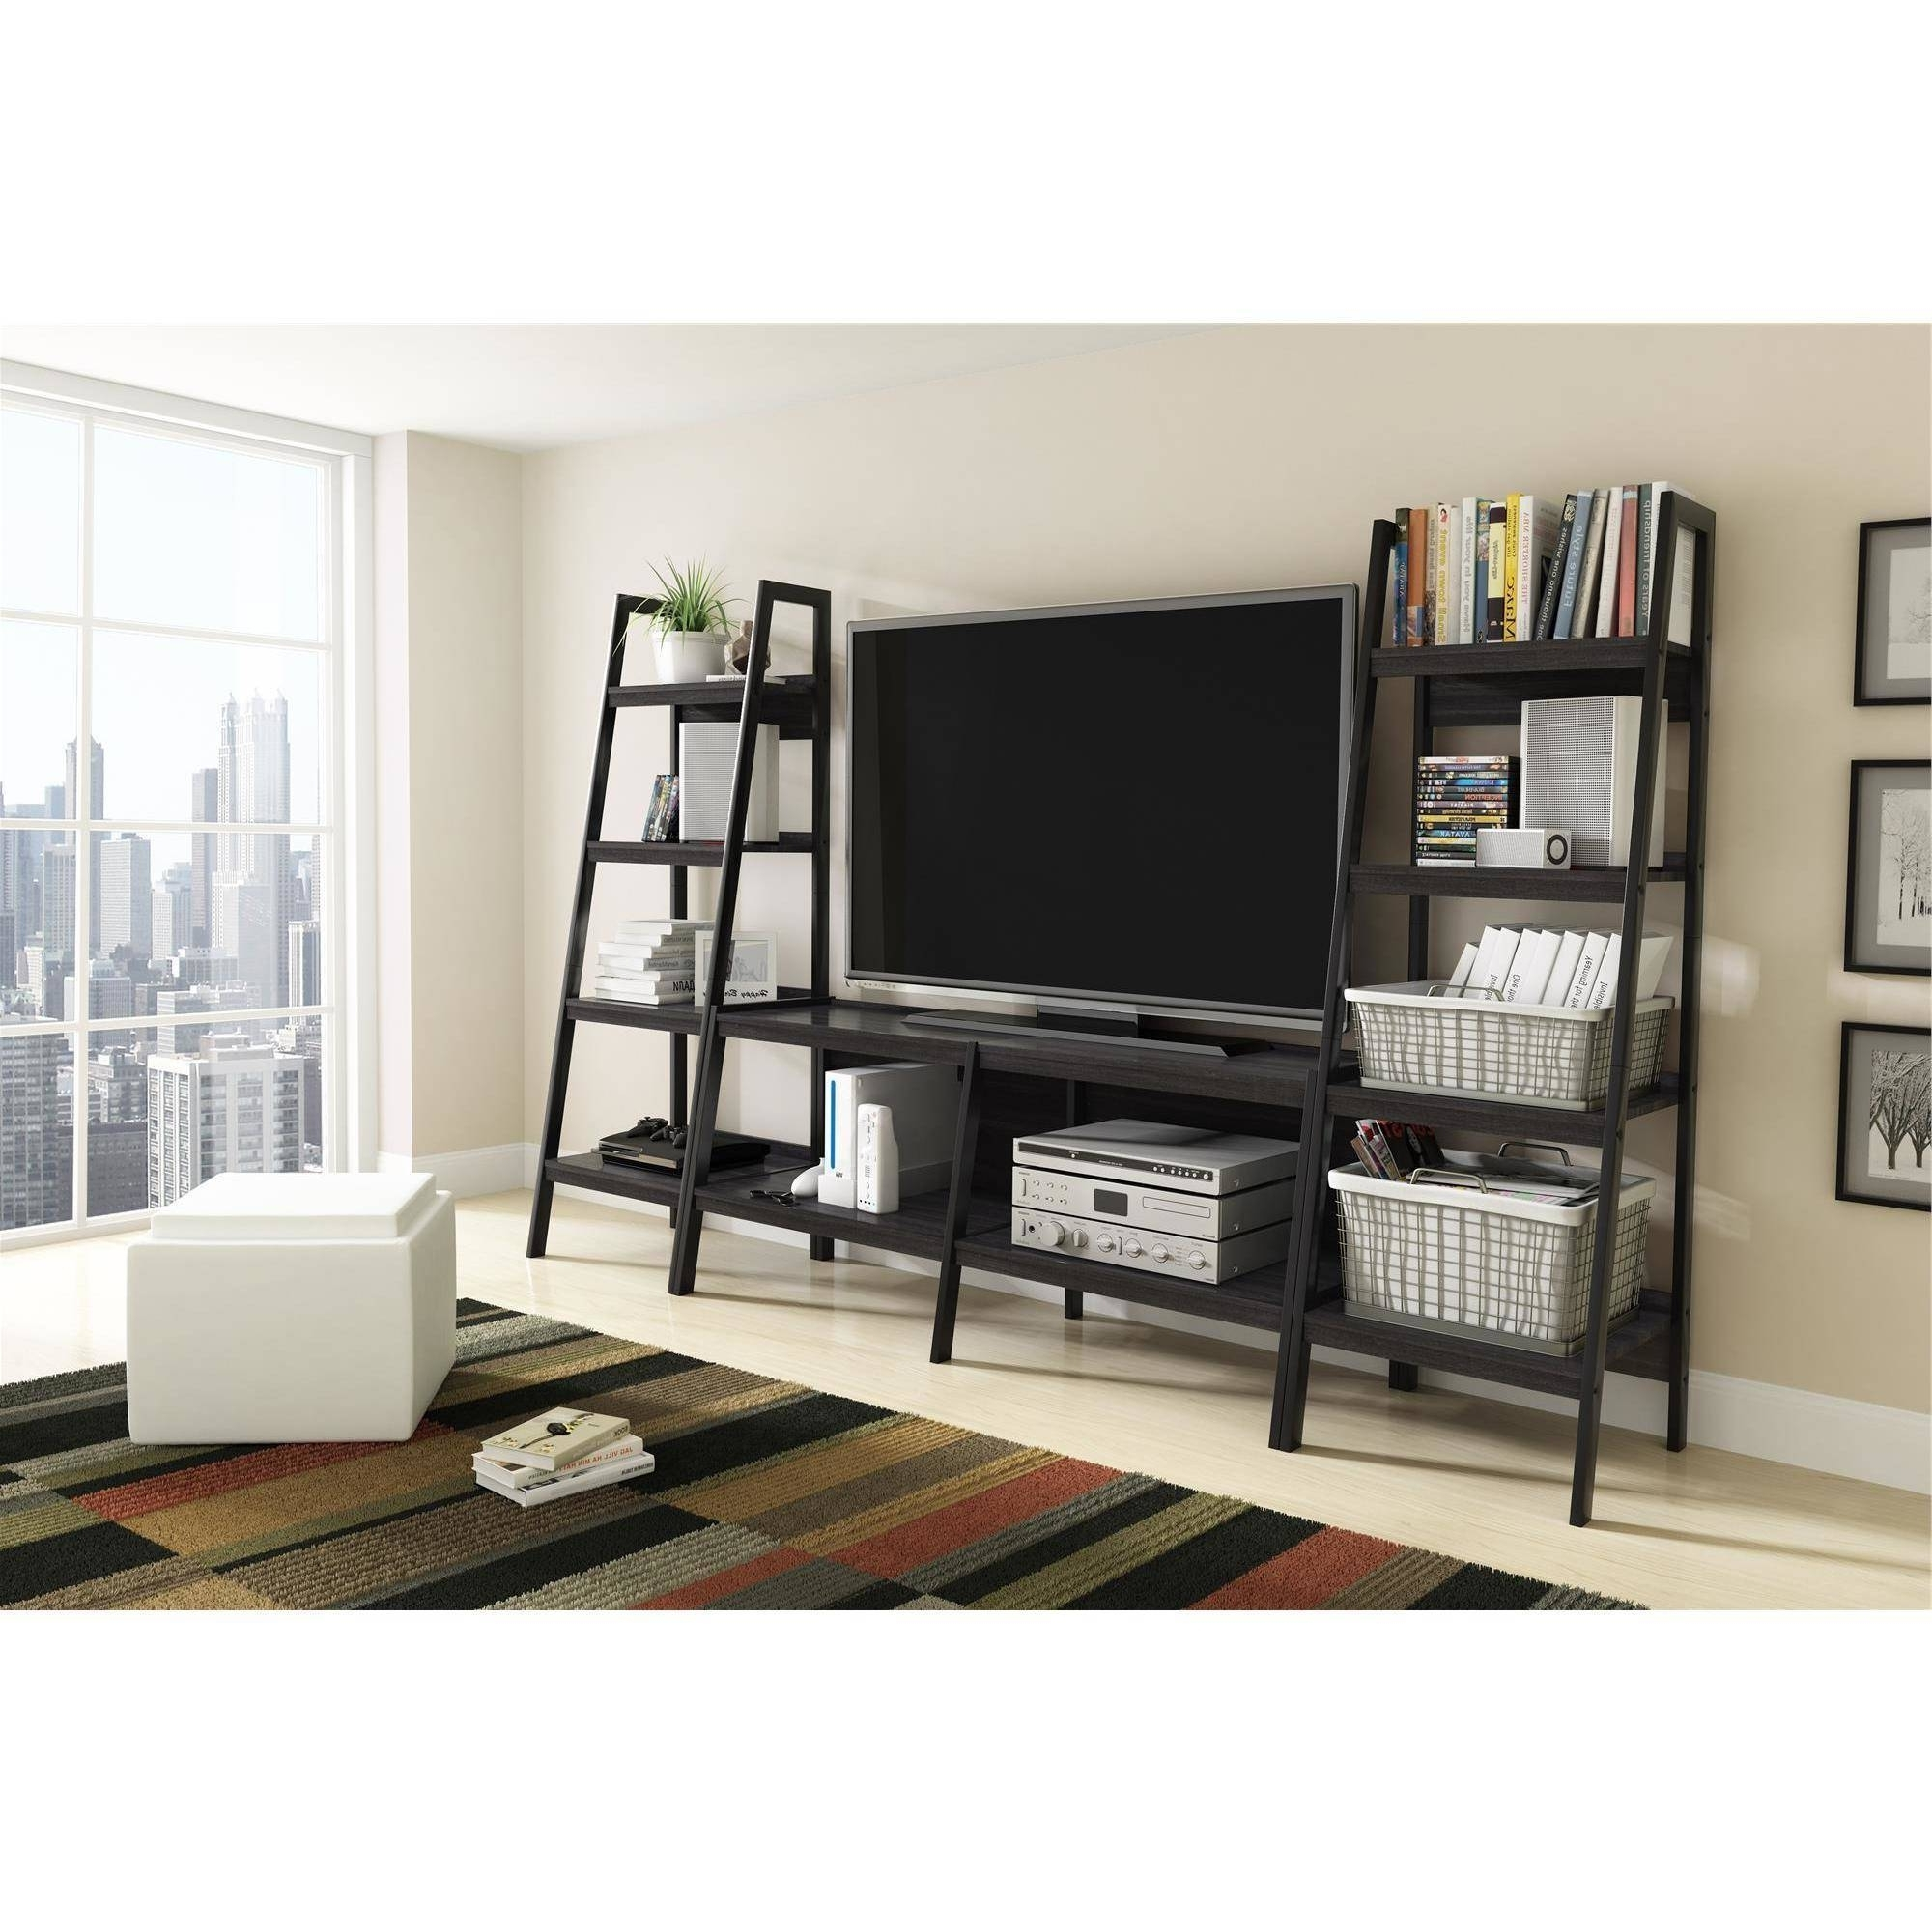 Wall Units: Inspiring Entertainment Centers With Bookshelves Throughout Well Liked Bookshelves Tv (View 15 of 15)